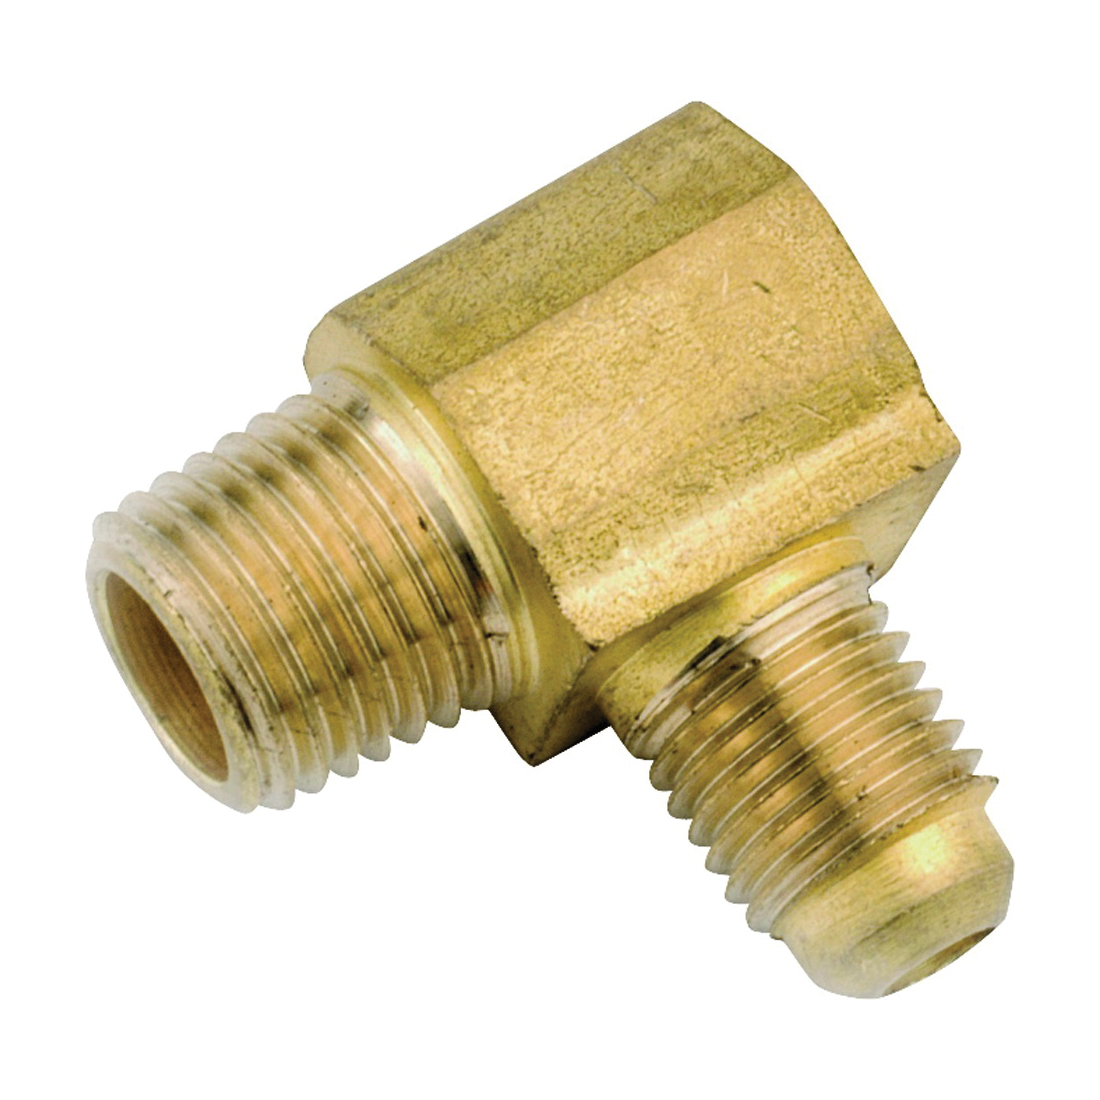 Picture of Anderson Metals 754049-0812 Tube Elbow, 1/2 x 3/4 in, 90 deg Angle, Lead-Free Brass, 750 psi Pressure